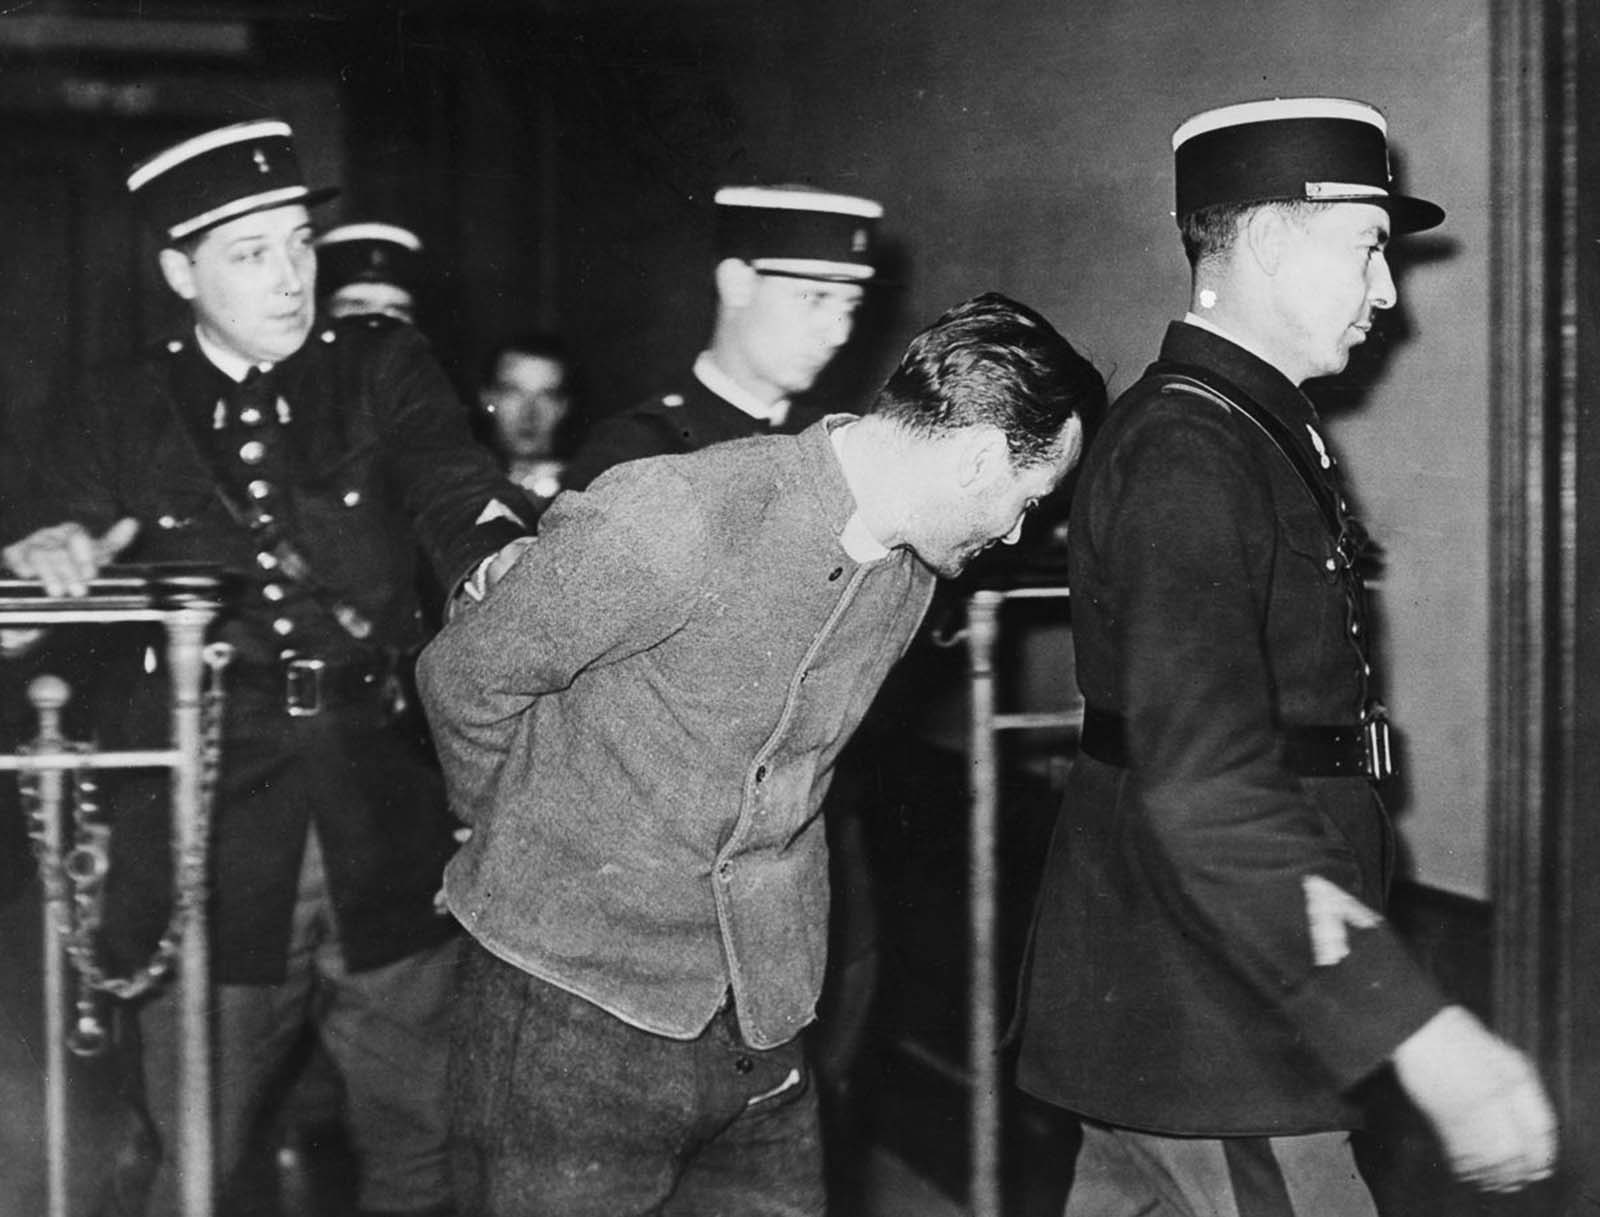 Weidmann is led away in handcuffs after his capture by police.